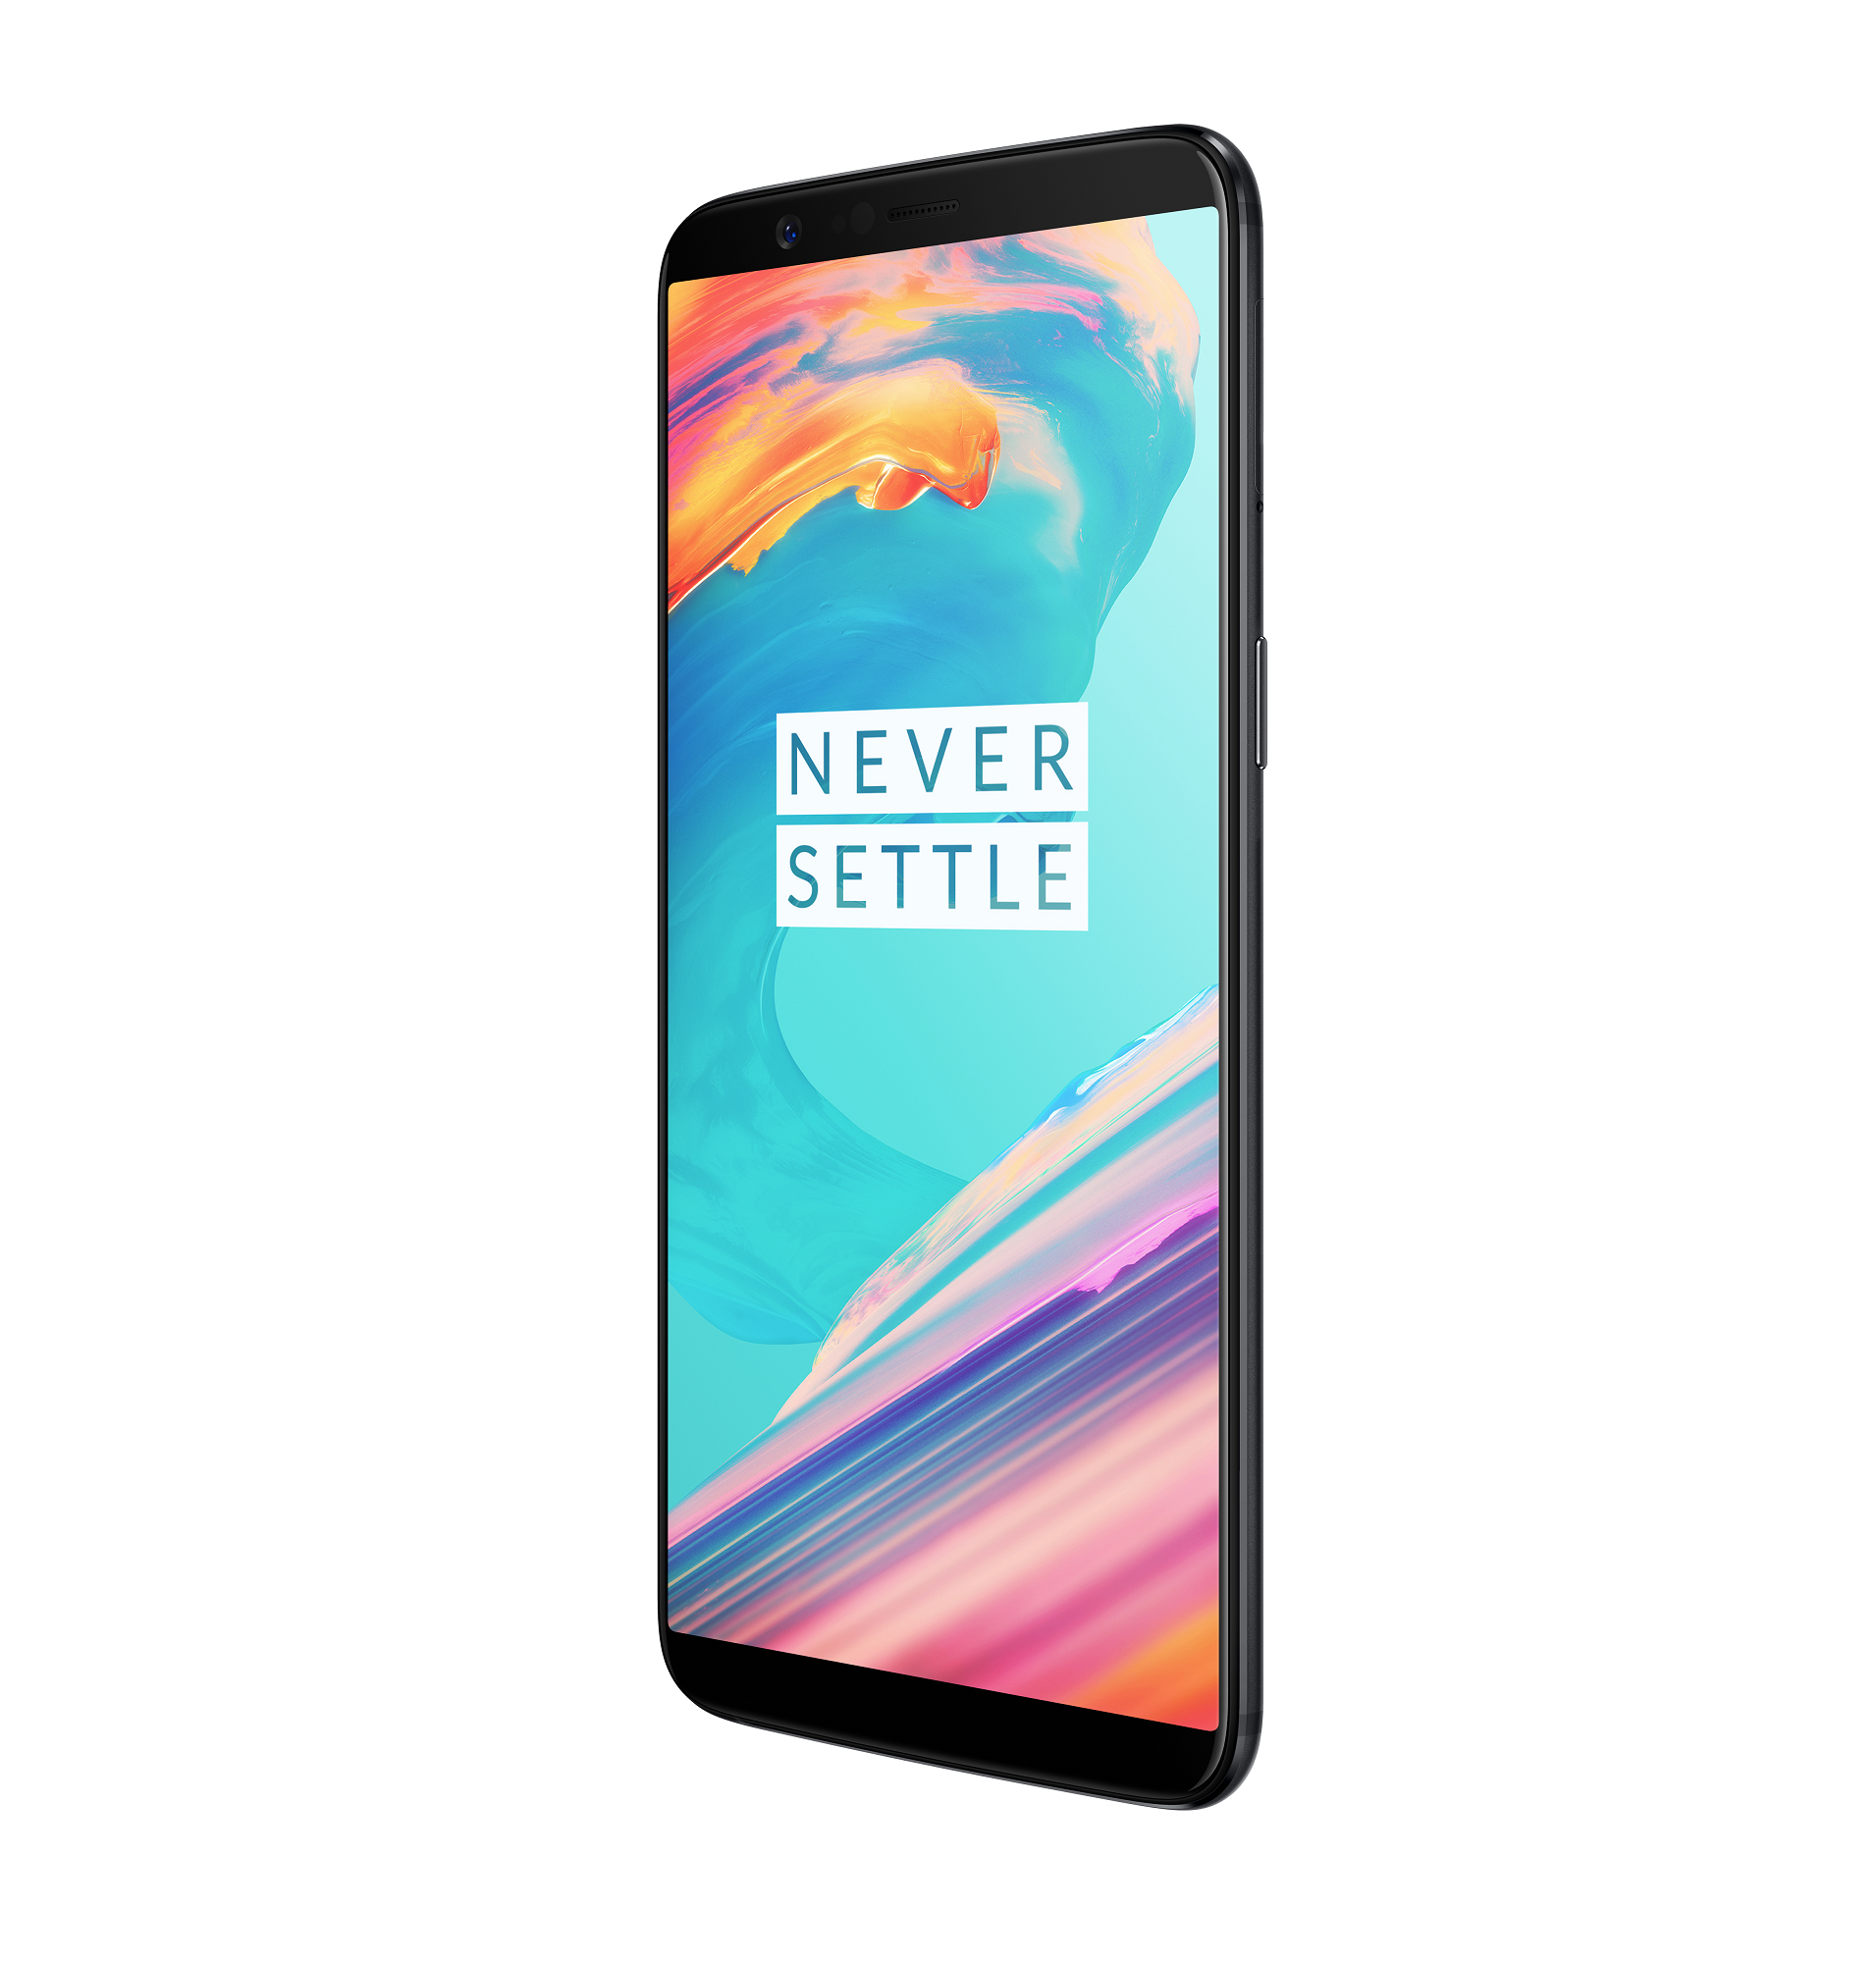 OnePlus 5 will be discontinued once the current stock ends, officially confirmed